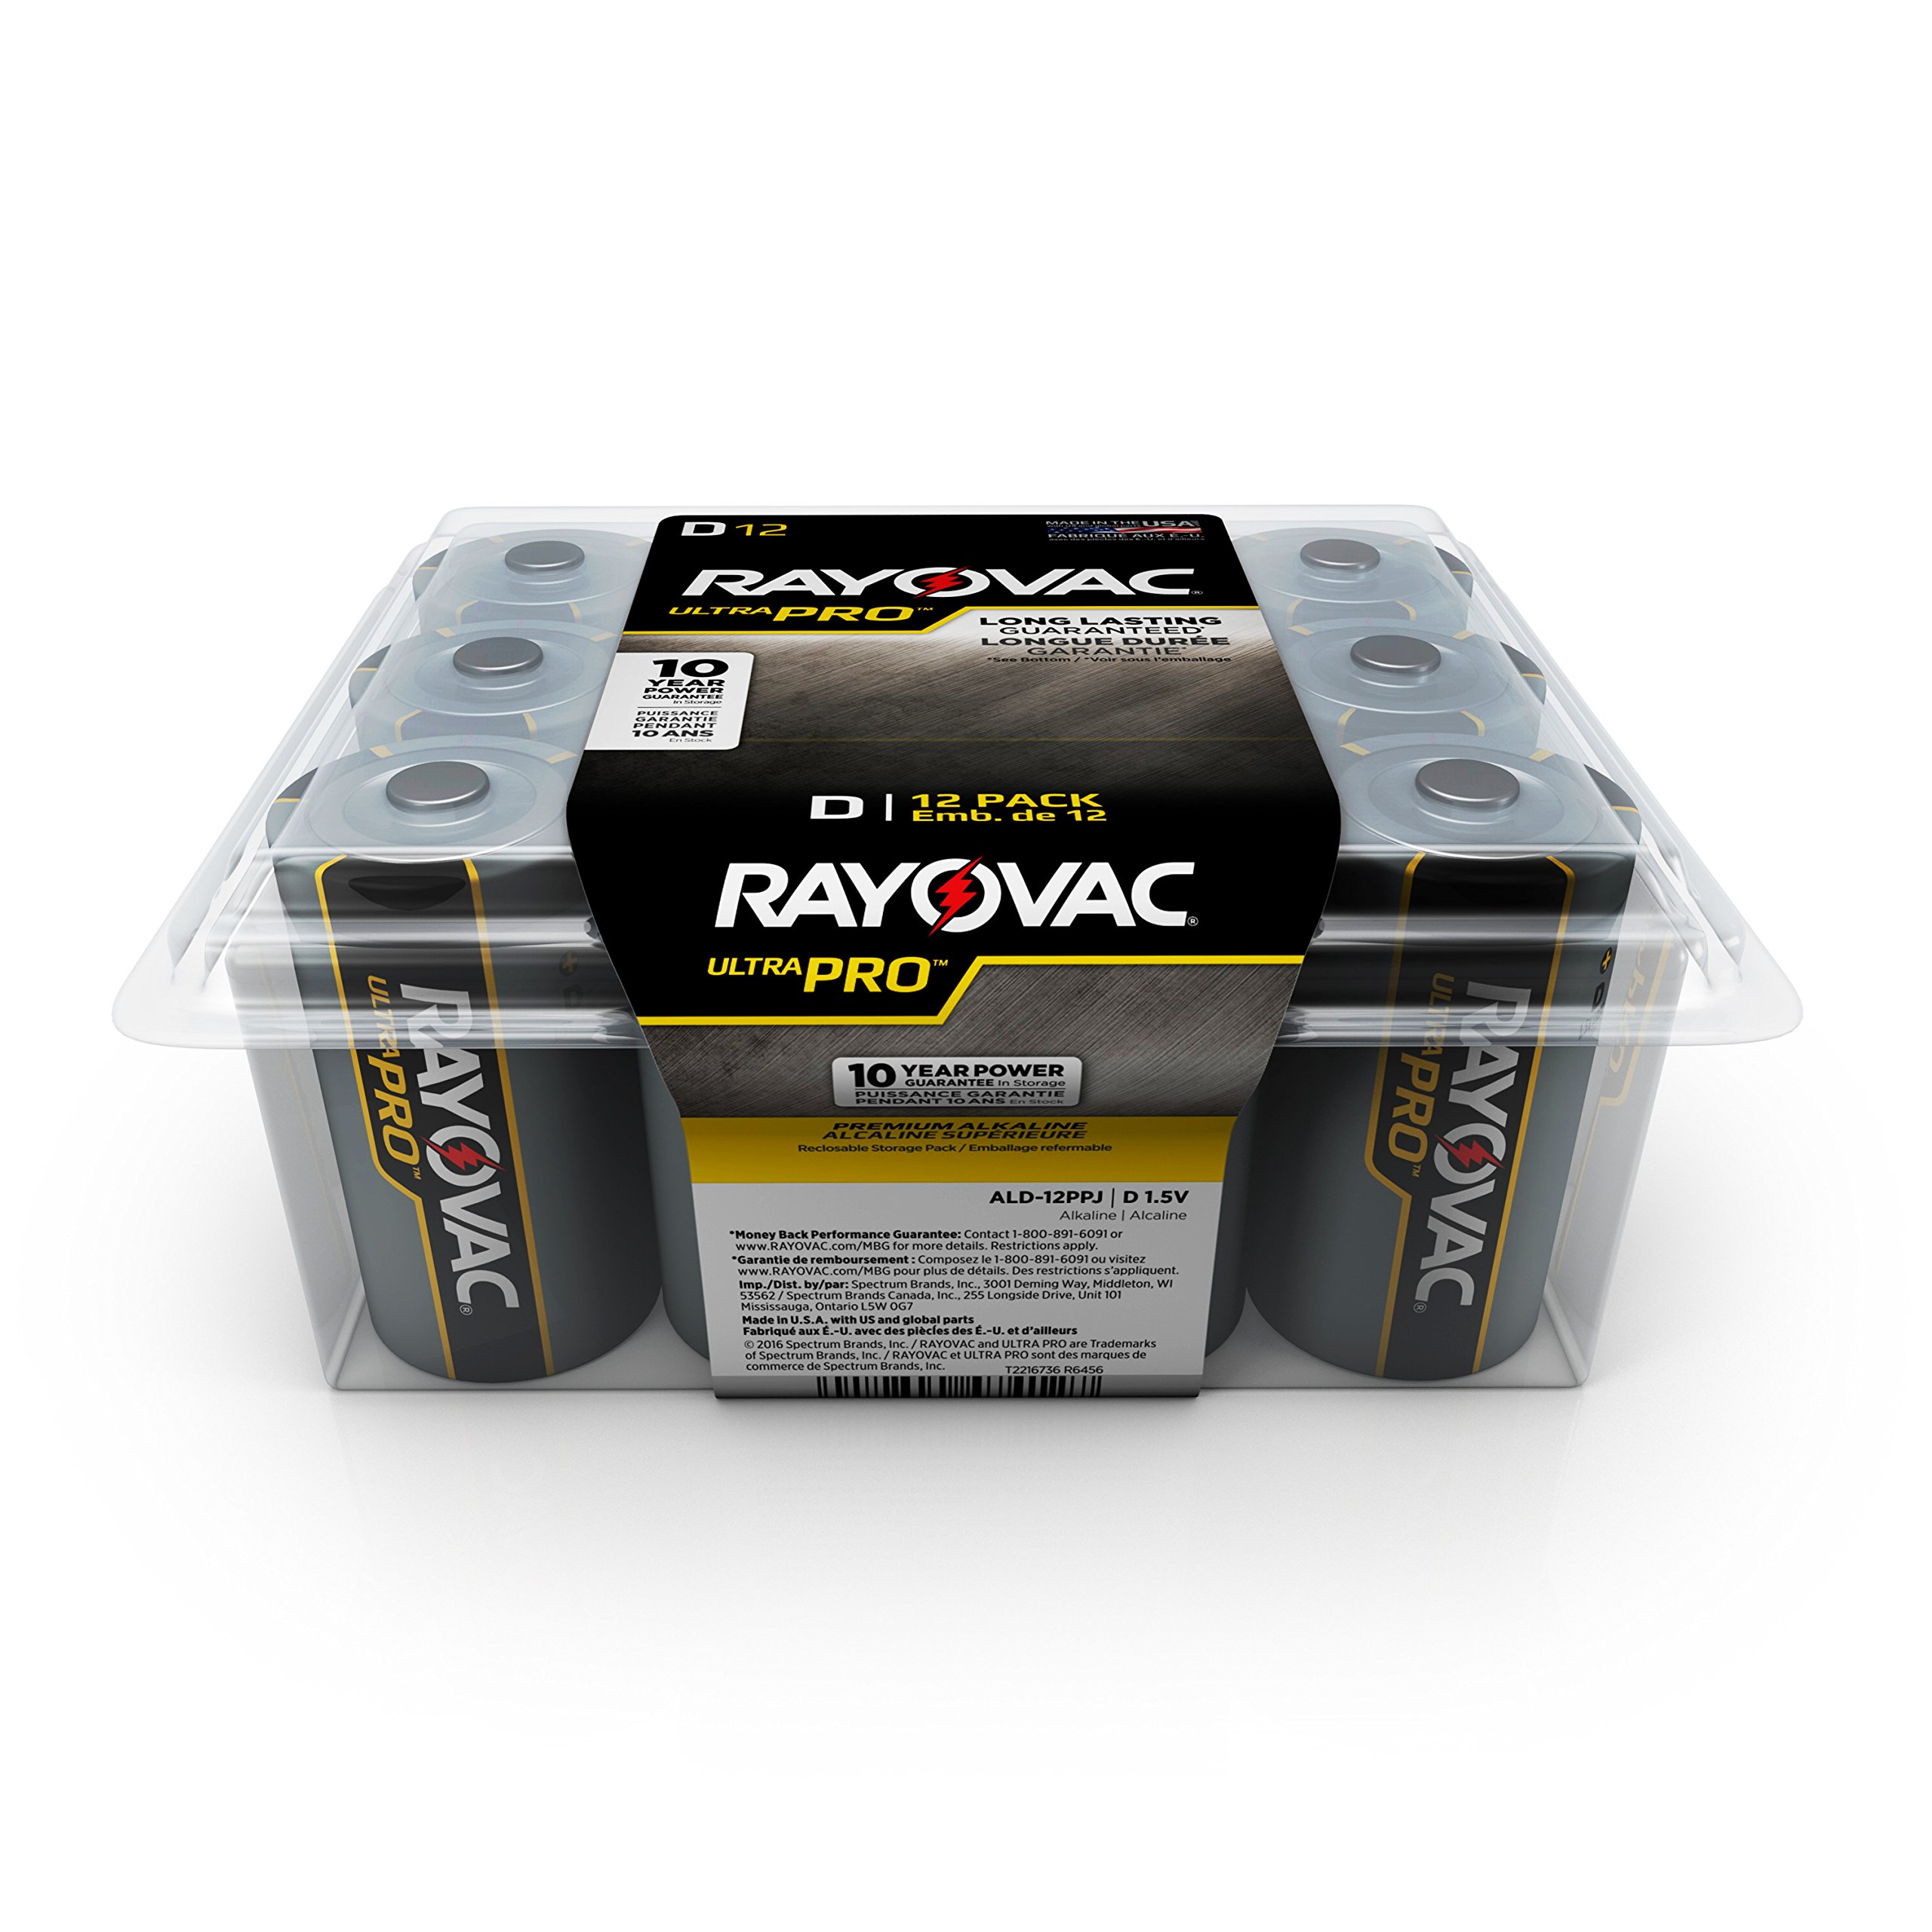 RAYOVAC D Ultra Pro Alkaline Batteries, 12-Pack with Recloseable Lid, ALD-12PPJ